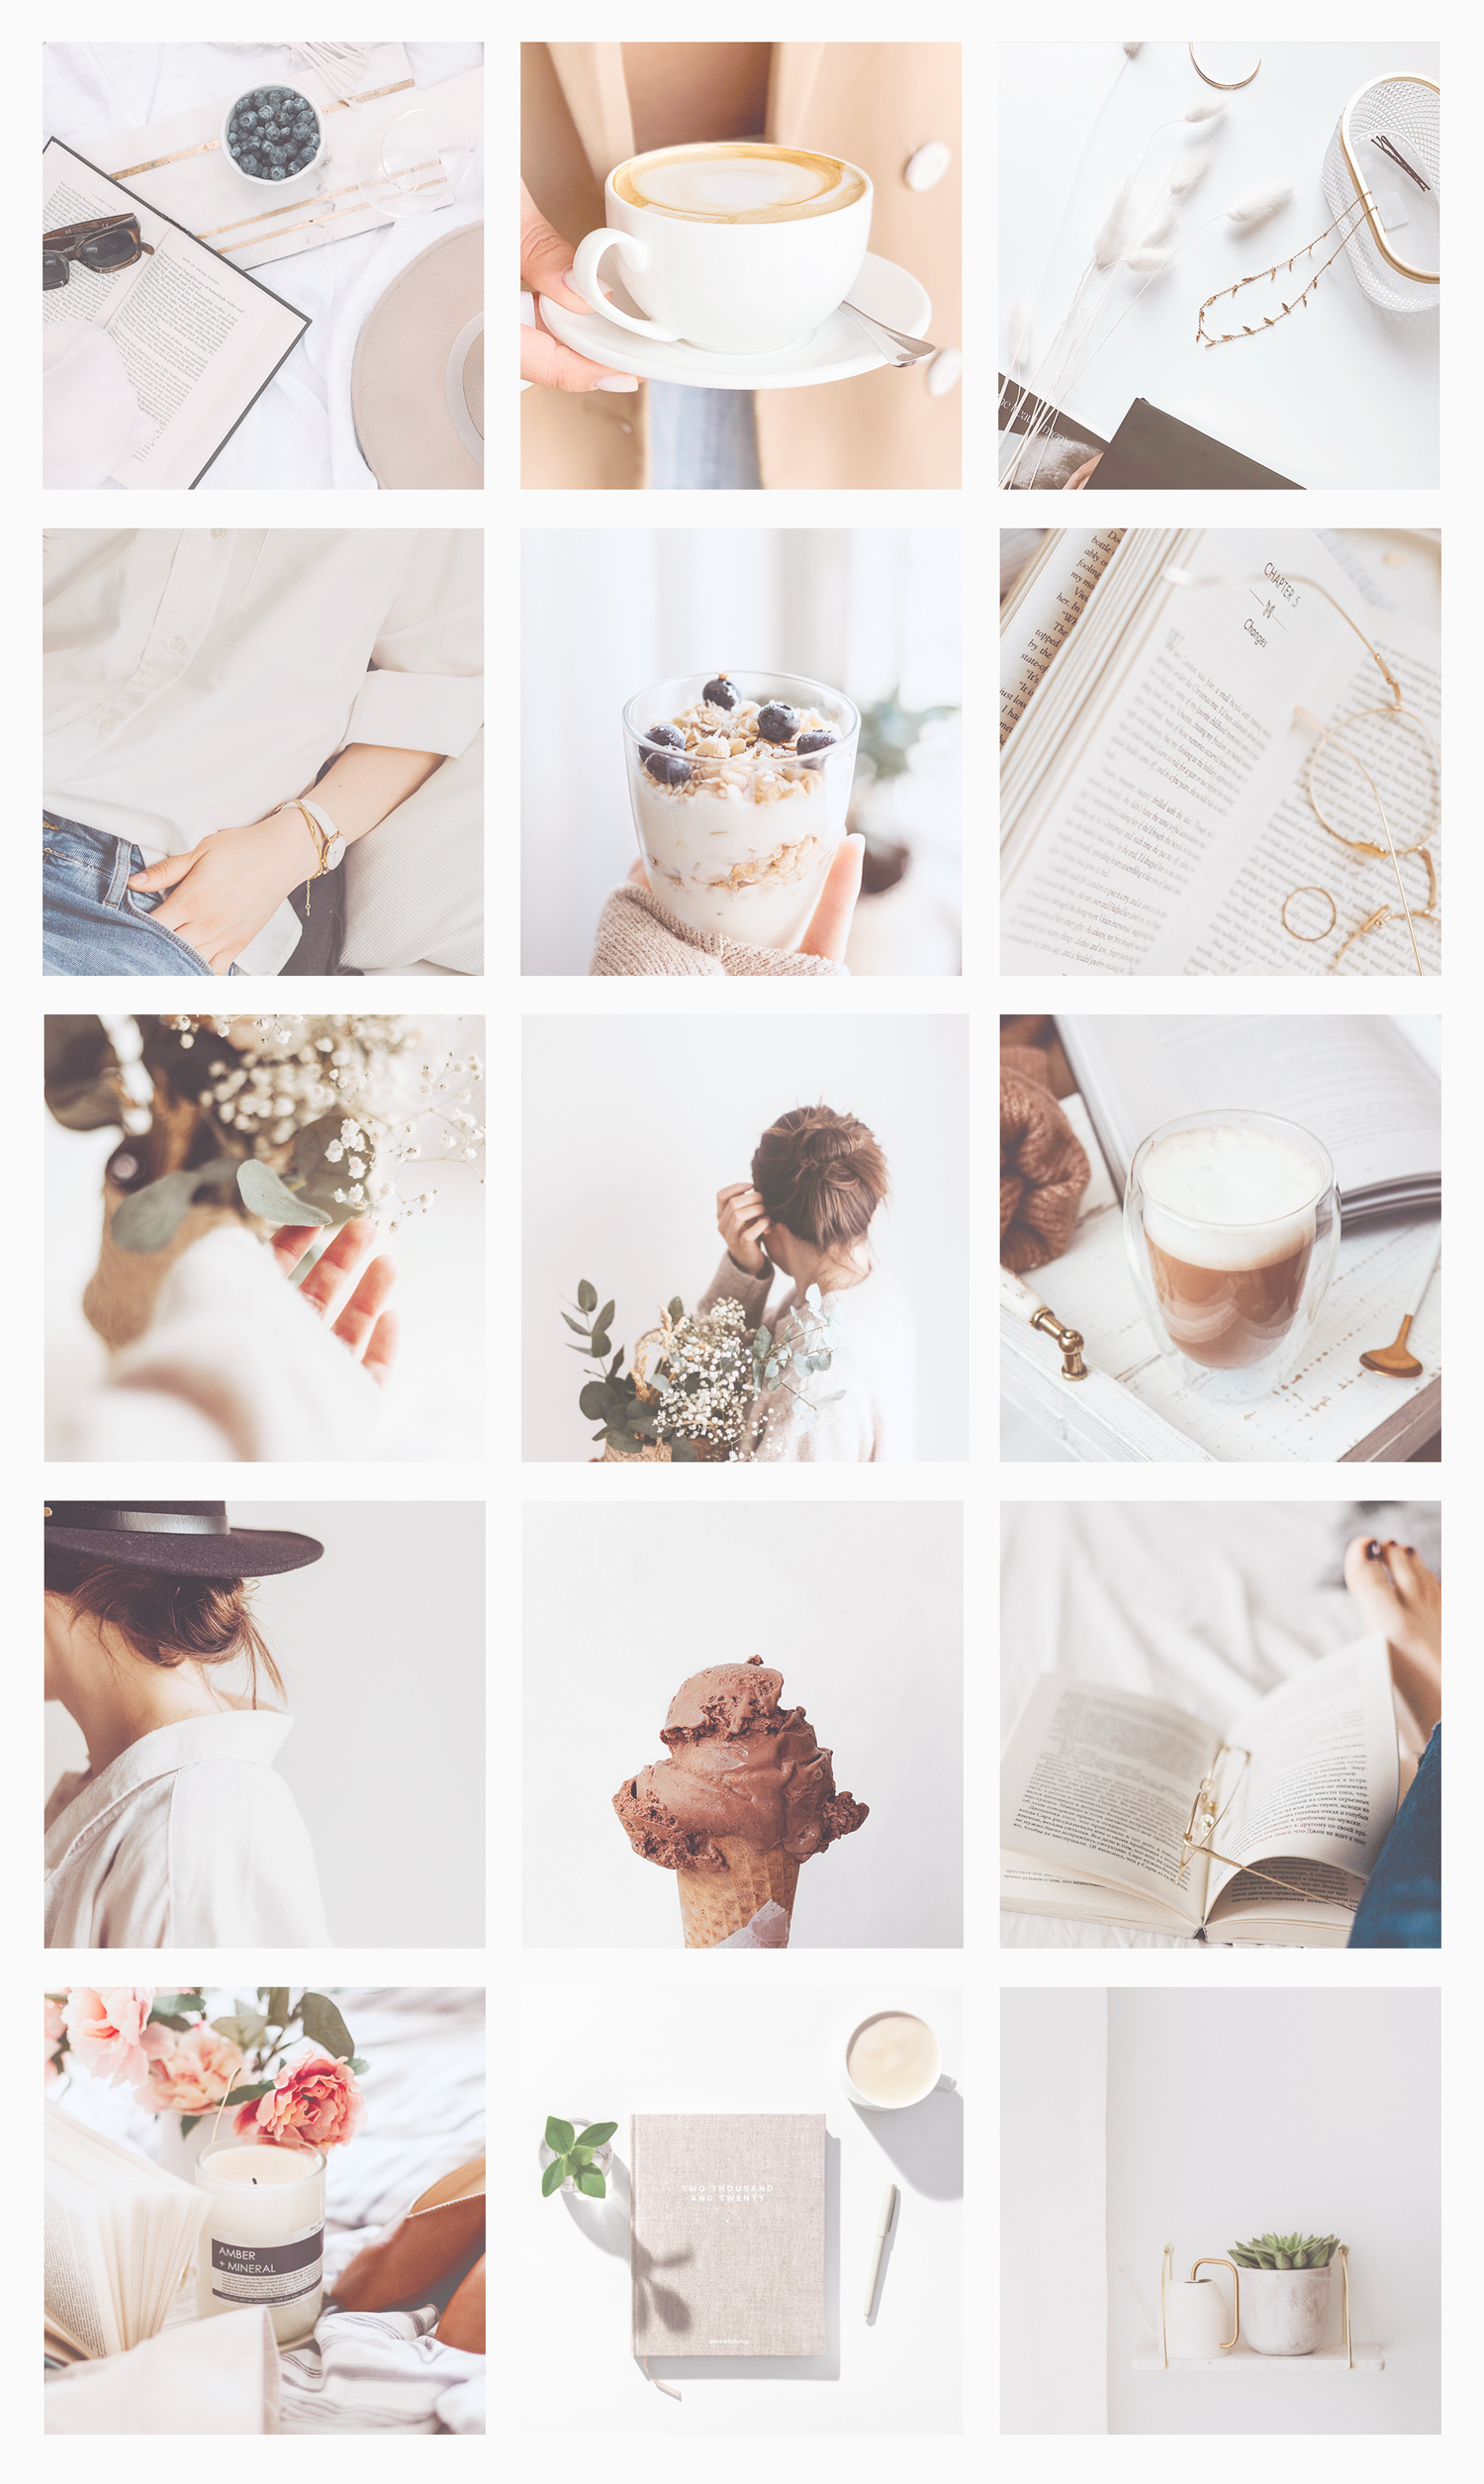 neutral instagram feed theme aesthetic